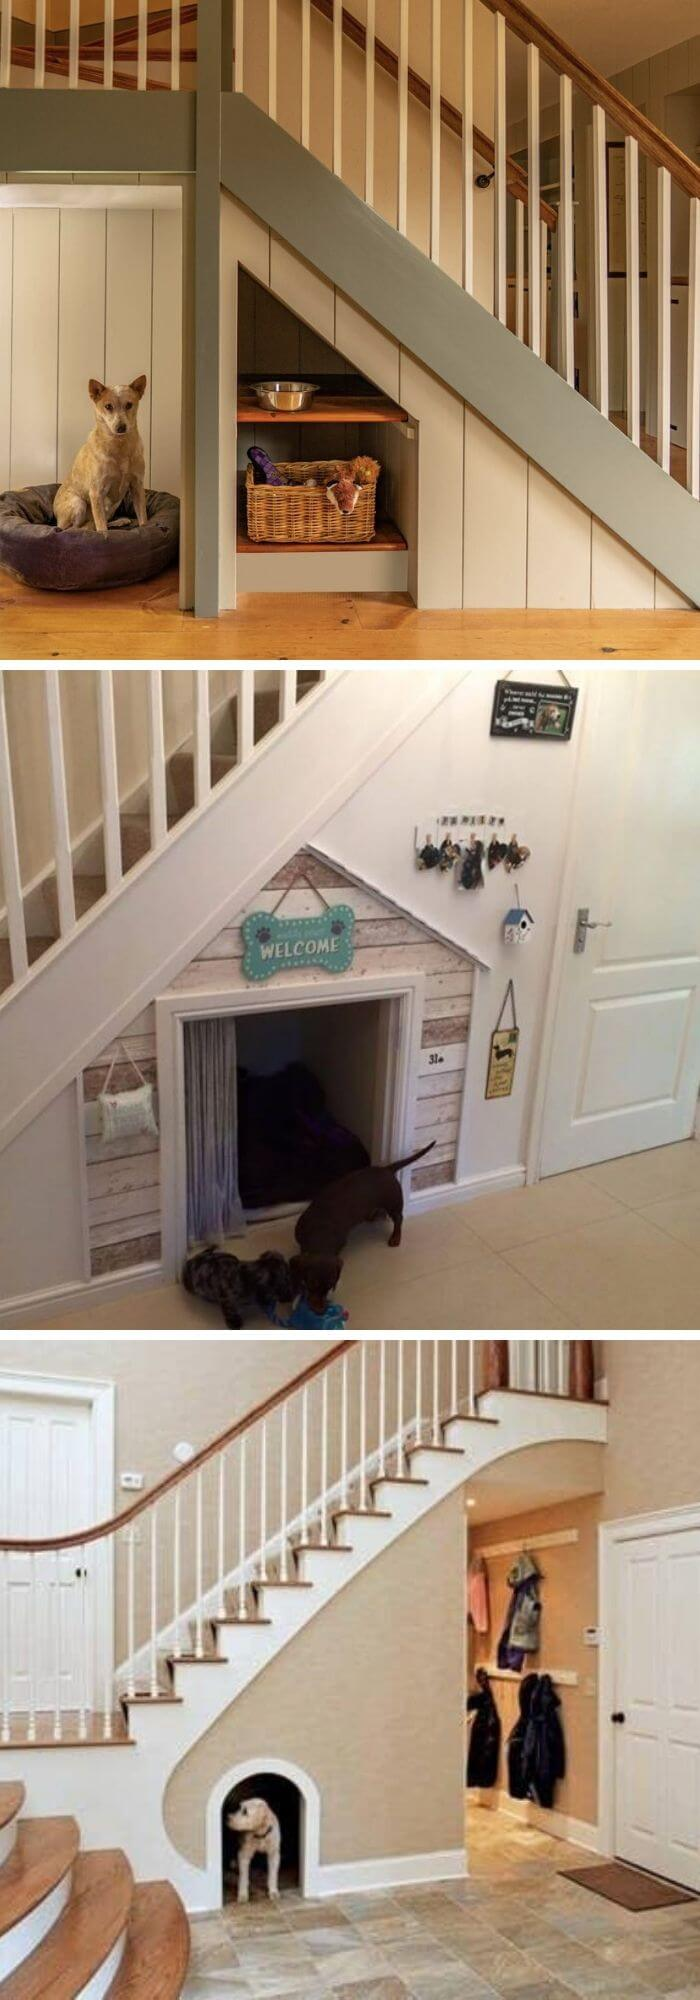 Heaven for dogs and other pets underneath the stairs